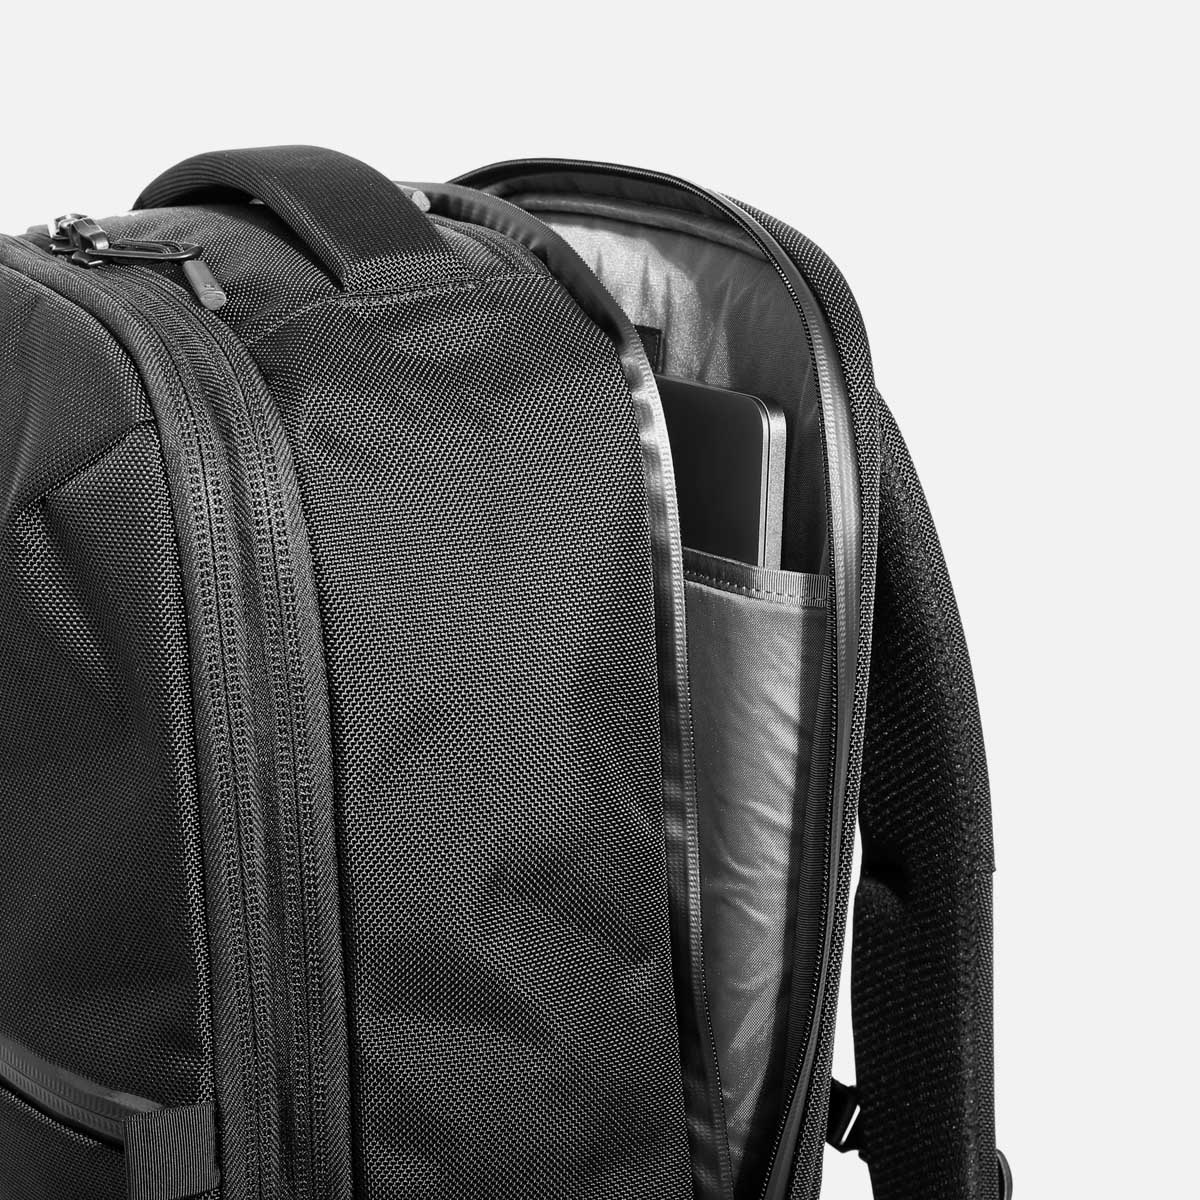 Quick-access, suspended laptop pocket with YKK® AquaGuard® zippers.